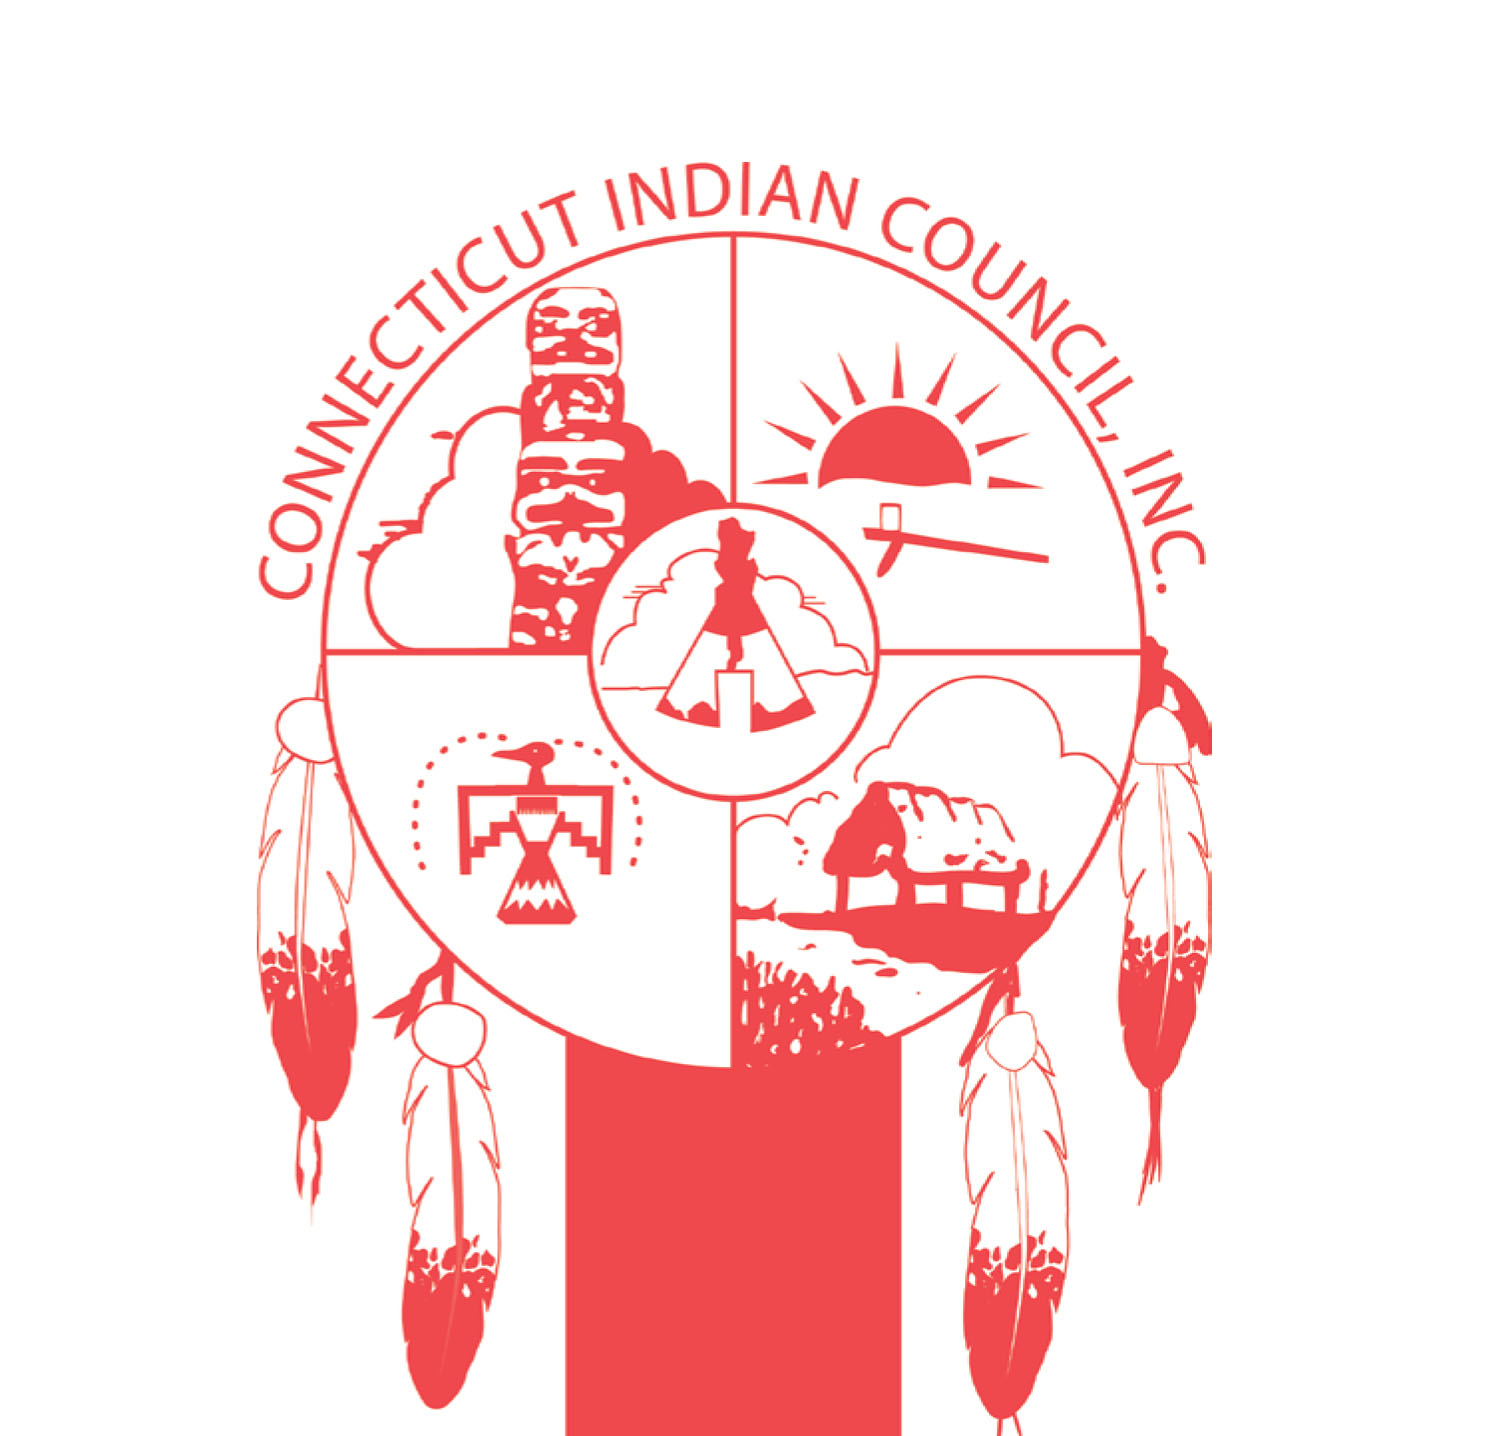 CT Indian Council